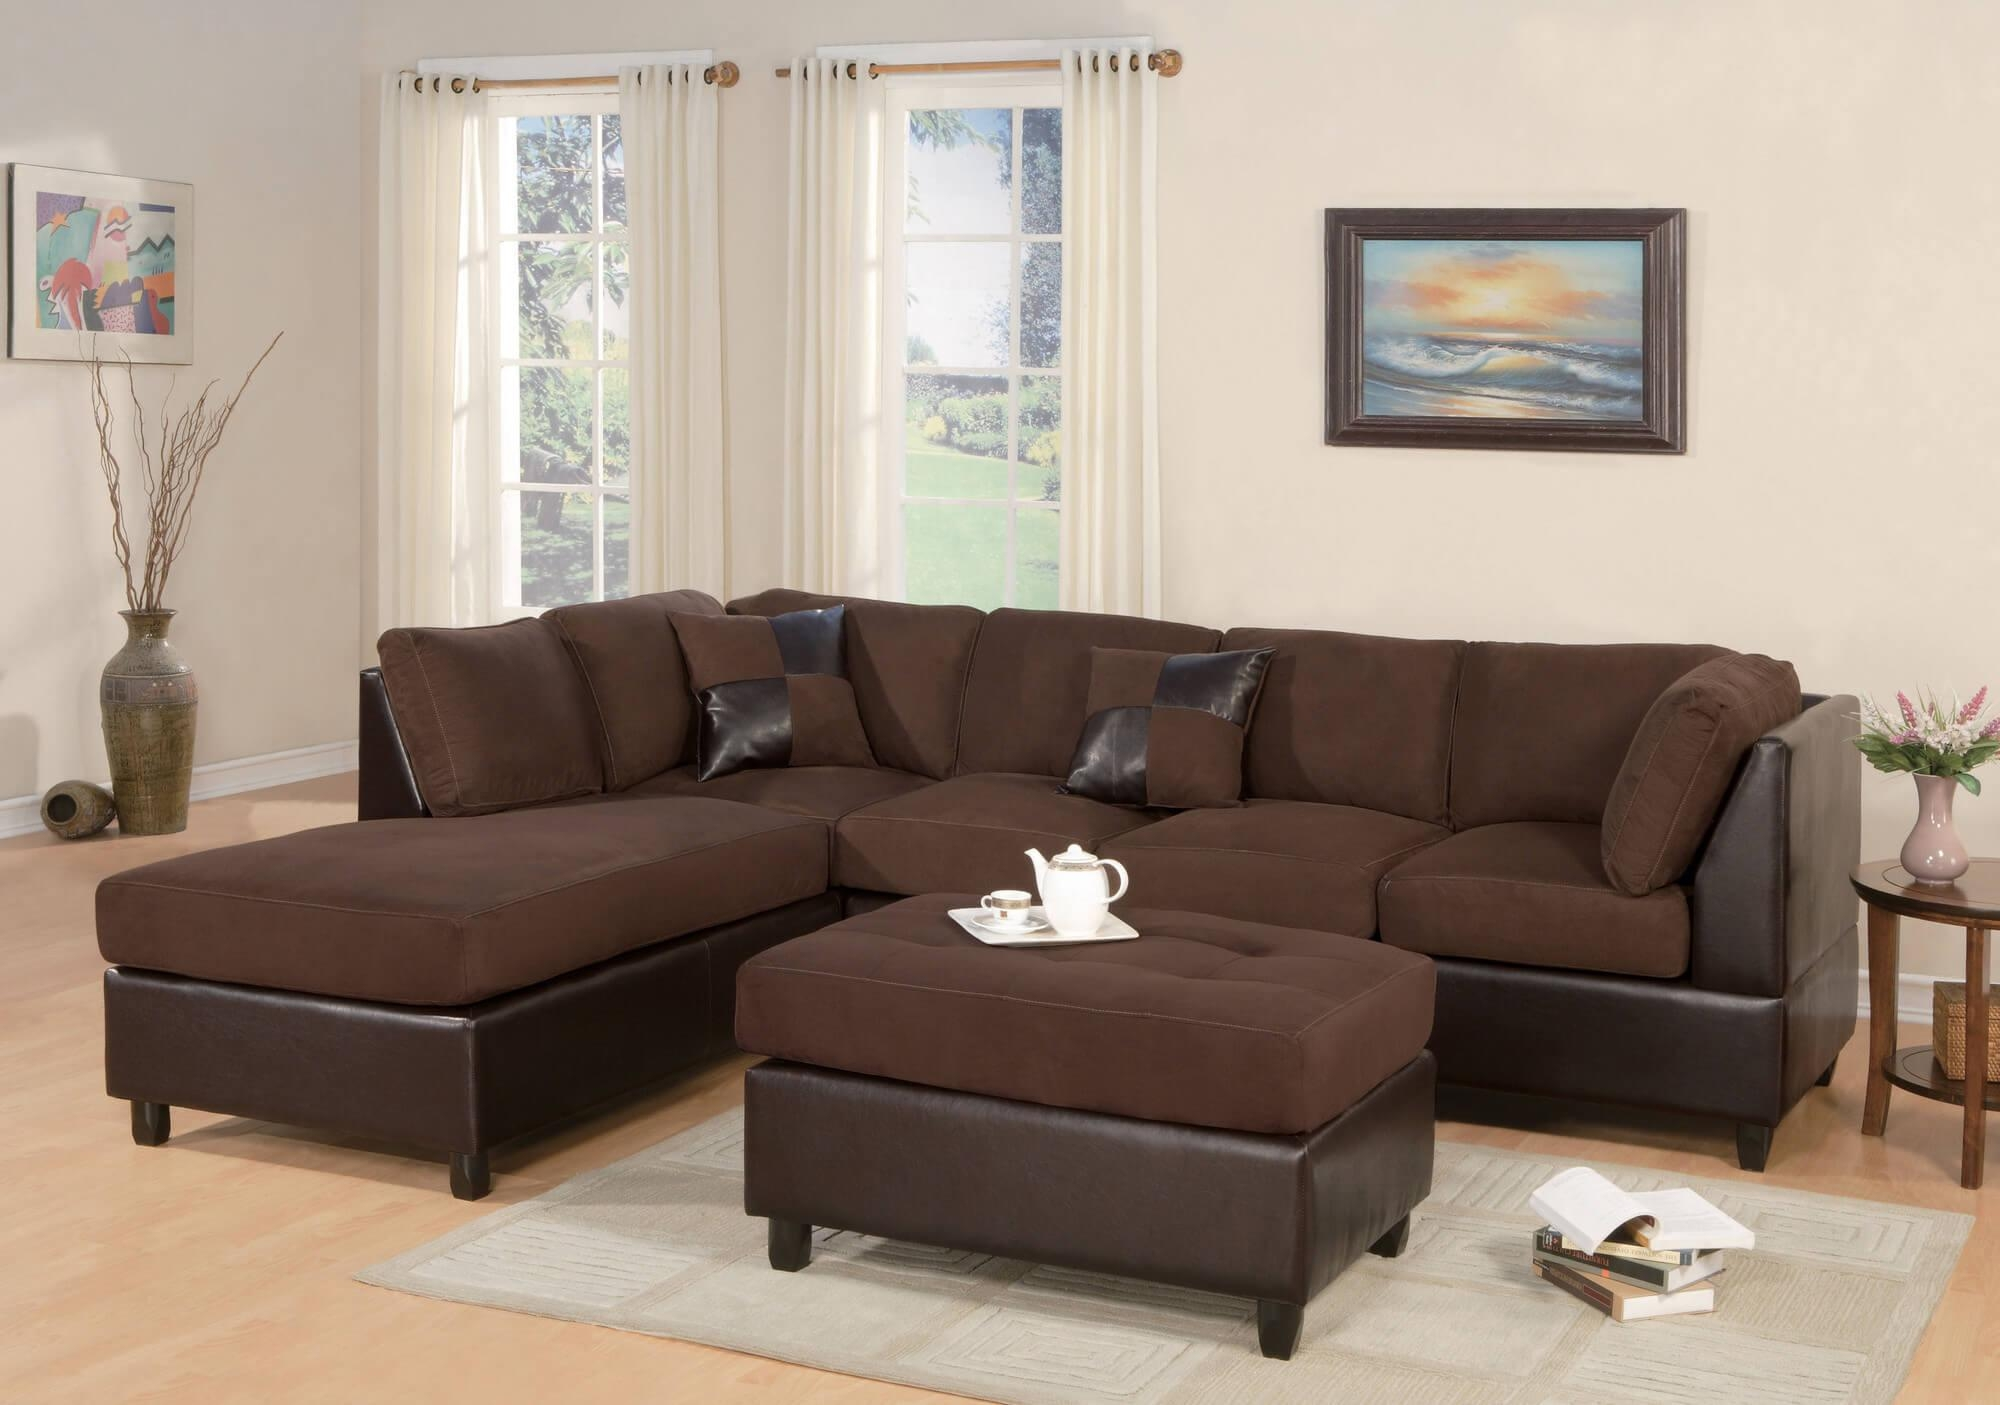 Decorating: Fill Your Home With Comfy Costco Sectionals Sofa For With Regard To Berkline Sectional Sofas (View 18 of 20)